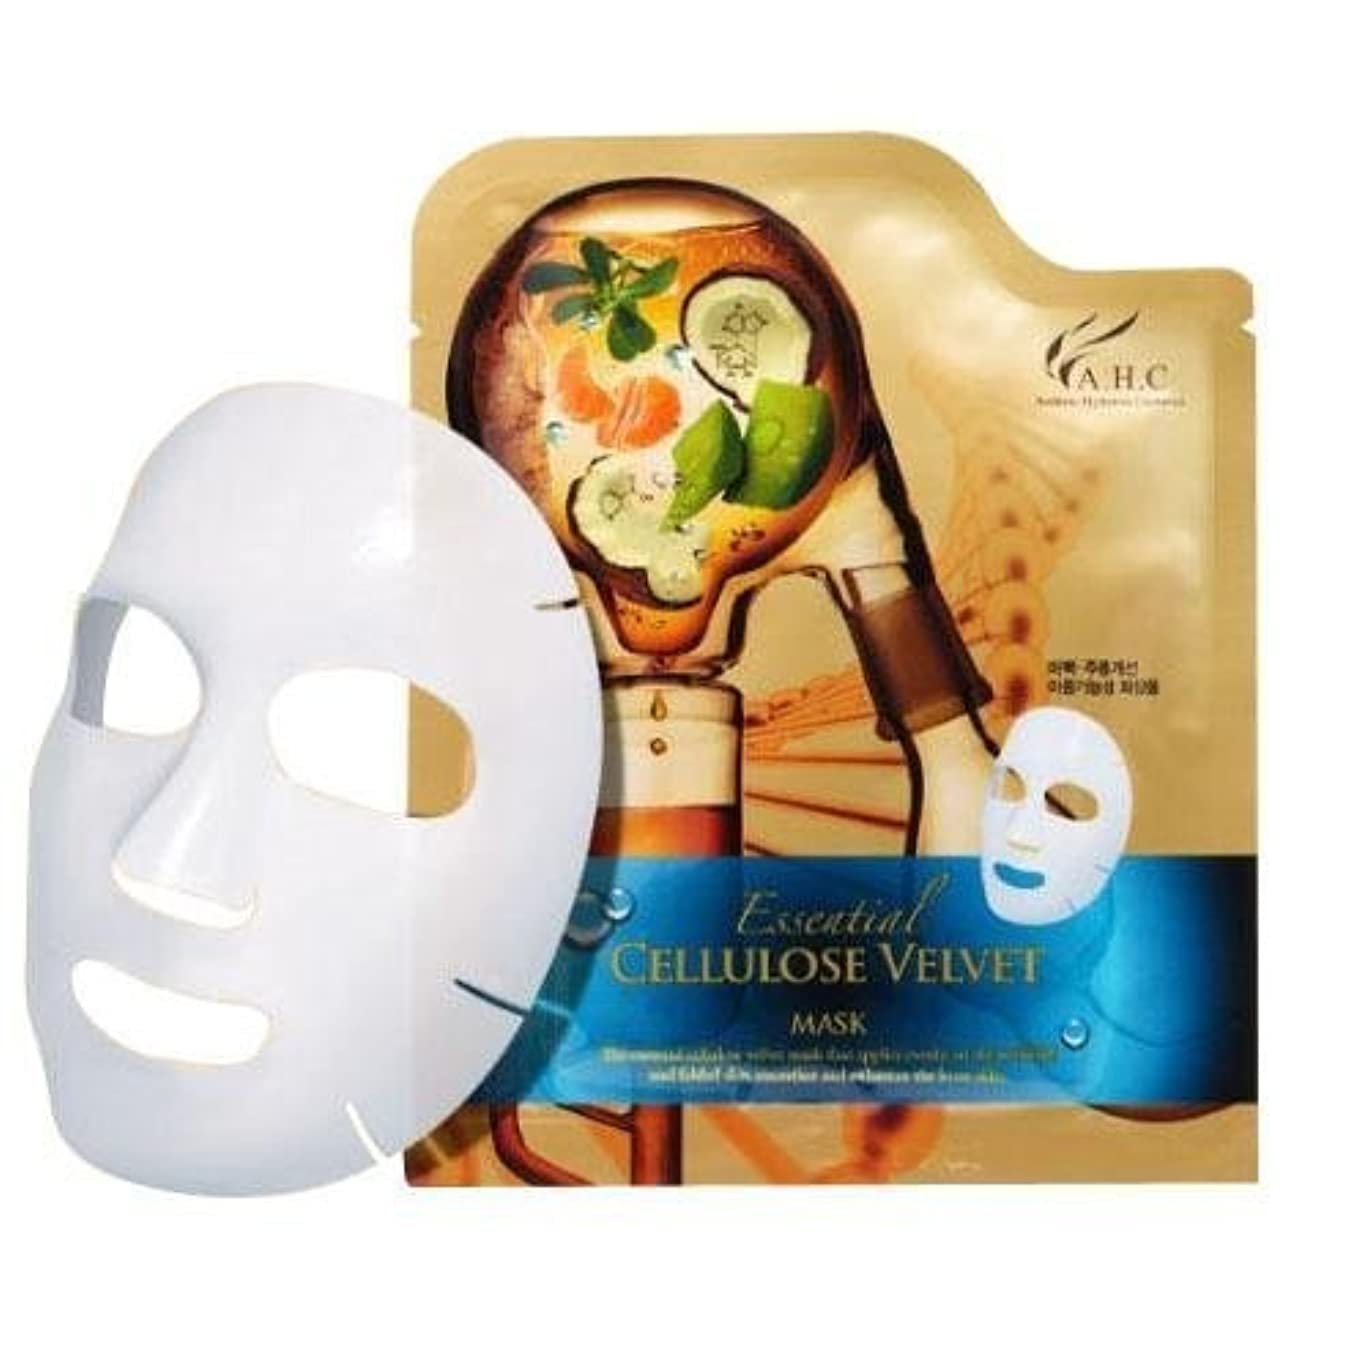 販売計画ステレオタイプ注文A.H.C Essencial Cellulose Velvet Mask (30g*1EA)/ Made in Korea